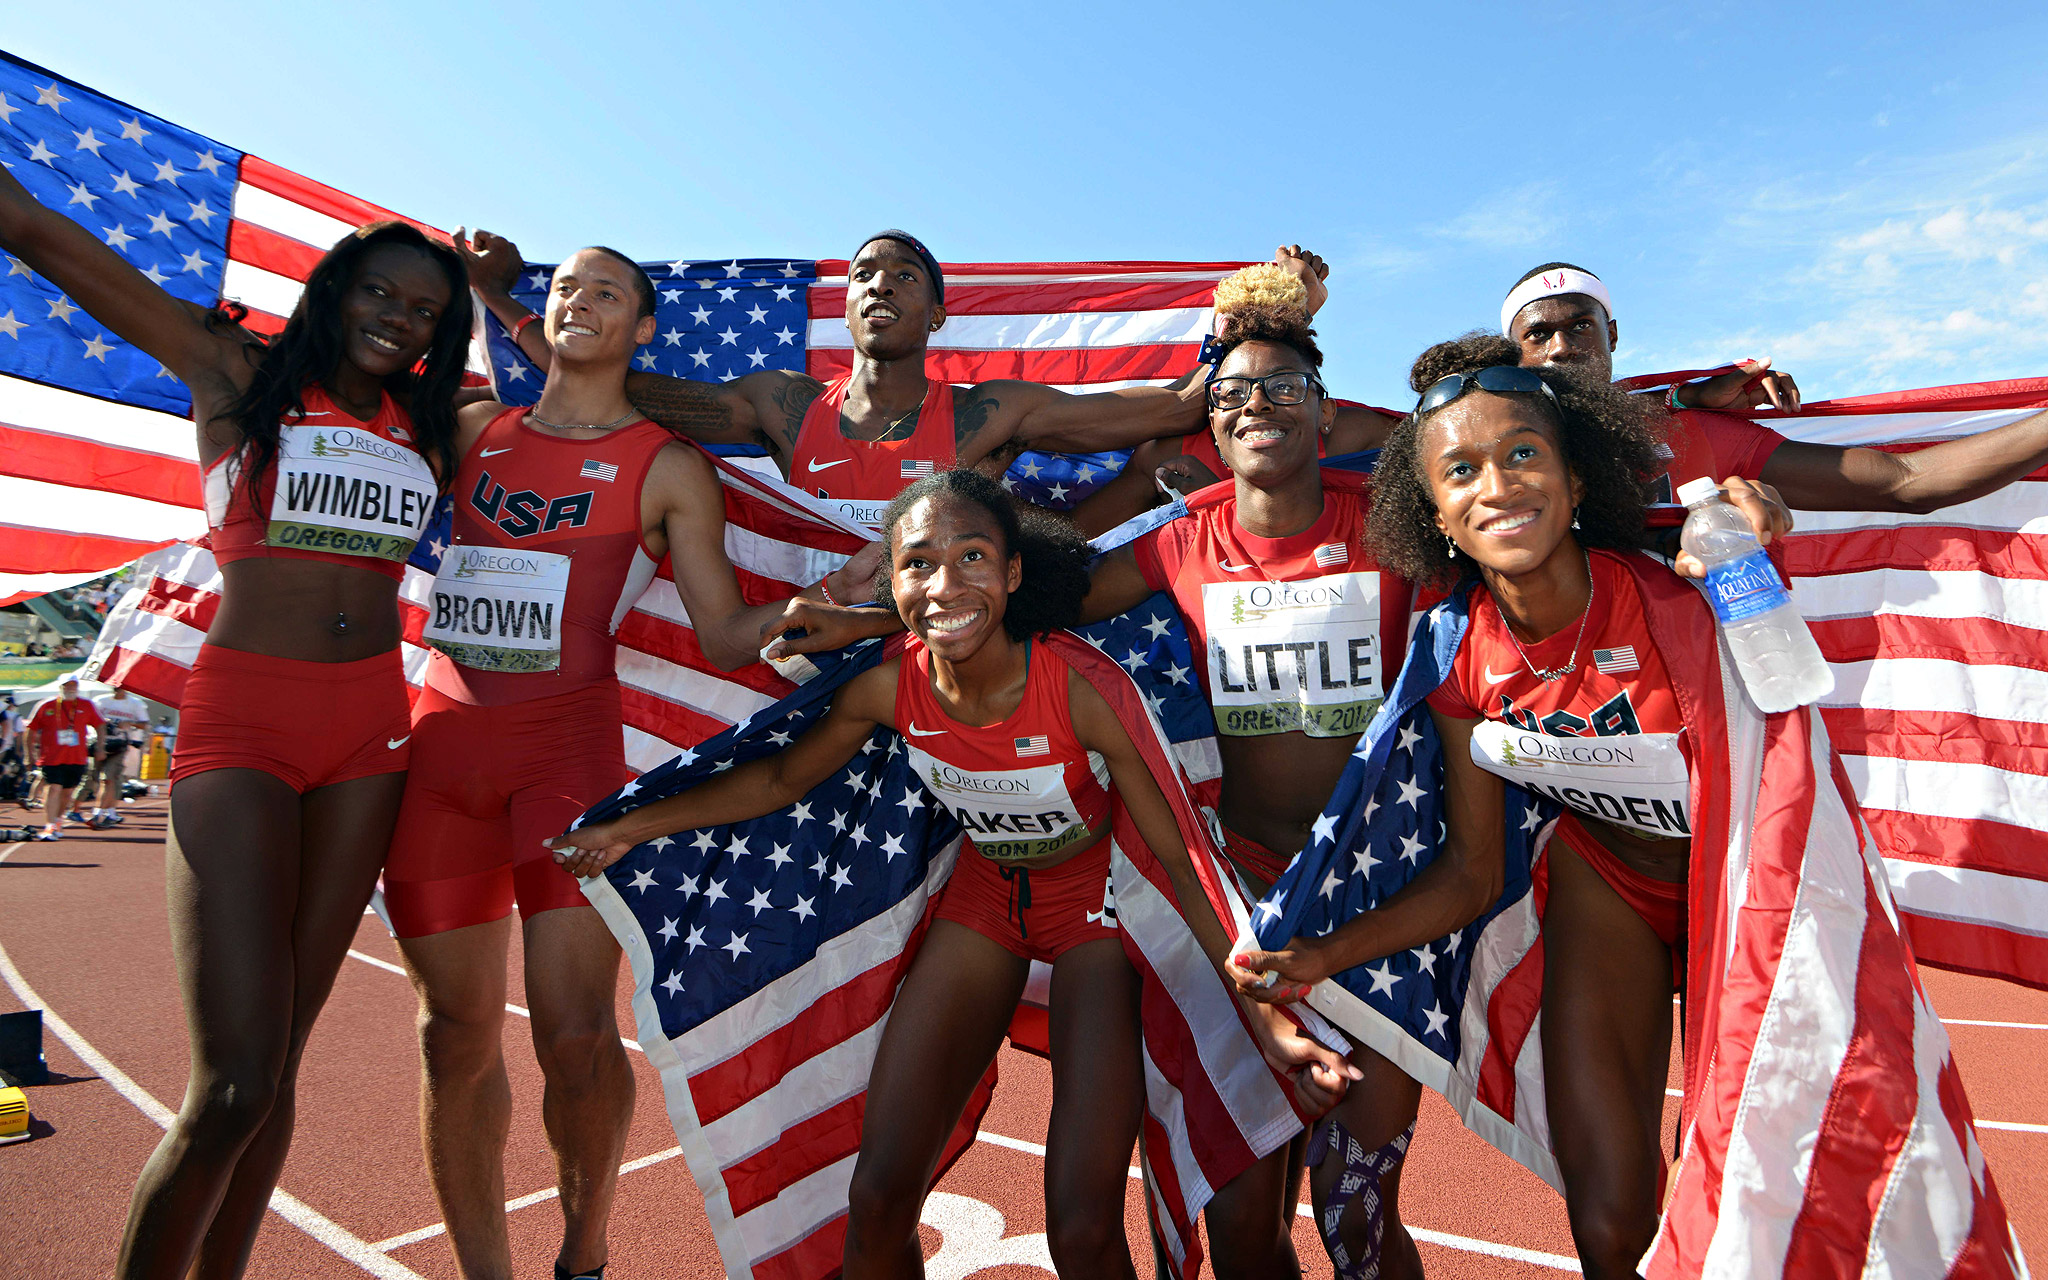 U.S. men's and women's 4 x 400-meter relays pose after winning gold in the IAAF junior world championships. From left: Shakima Wimbley, Tyler Brown, Michael Cherry, Olivia Baker, Shamier Little, Josephus Lyles, Kendall Baisden and Ricky Morgan.